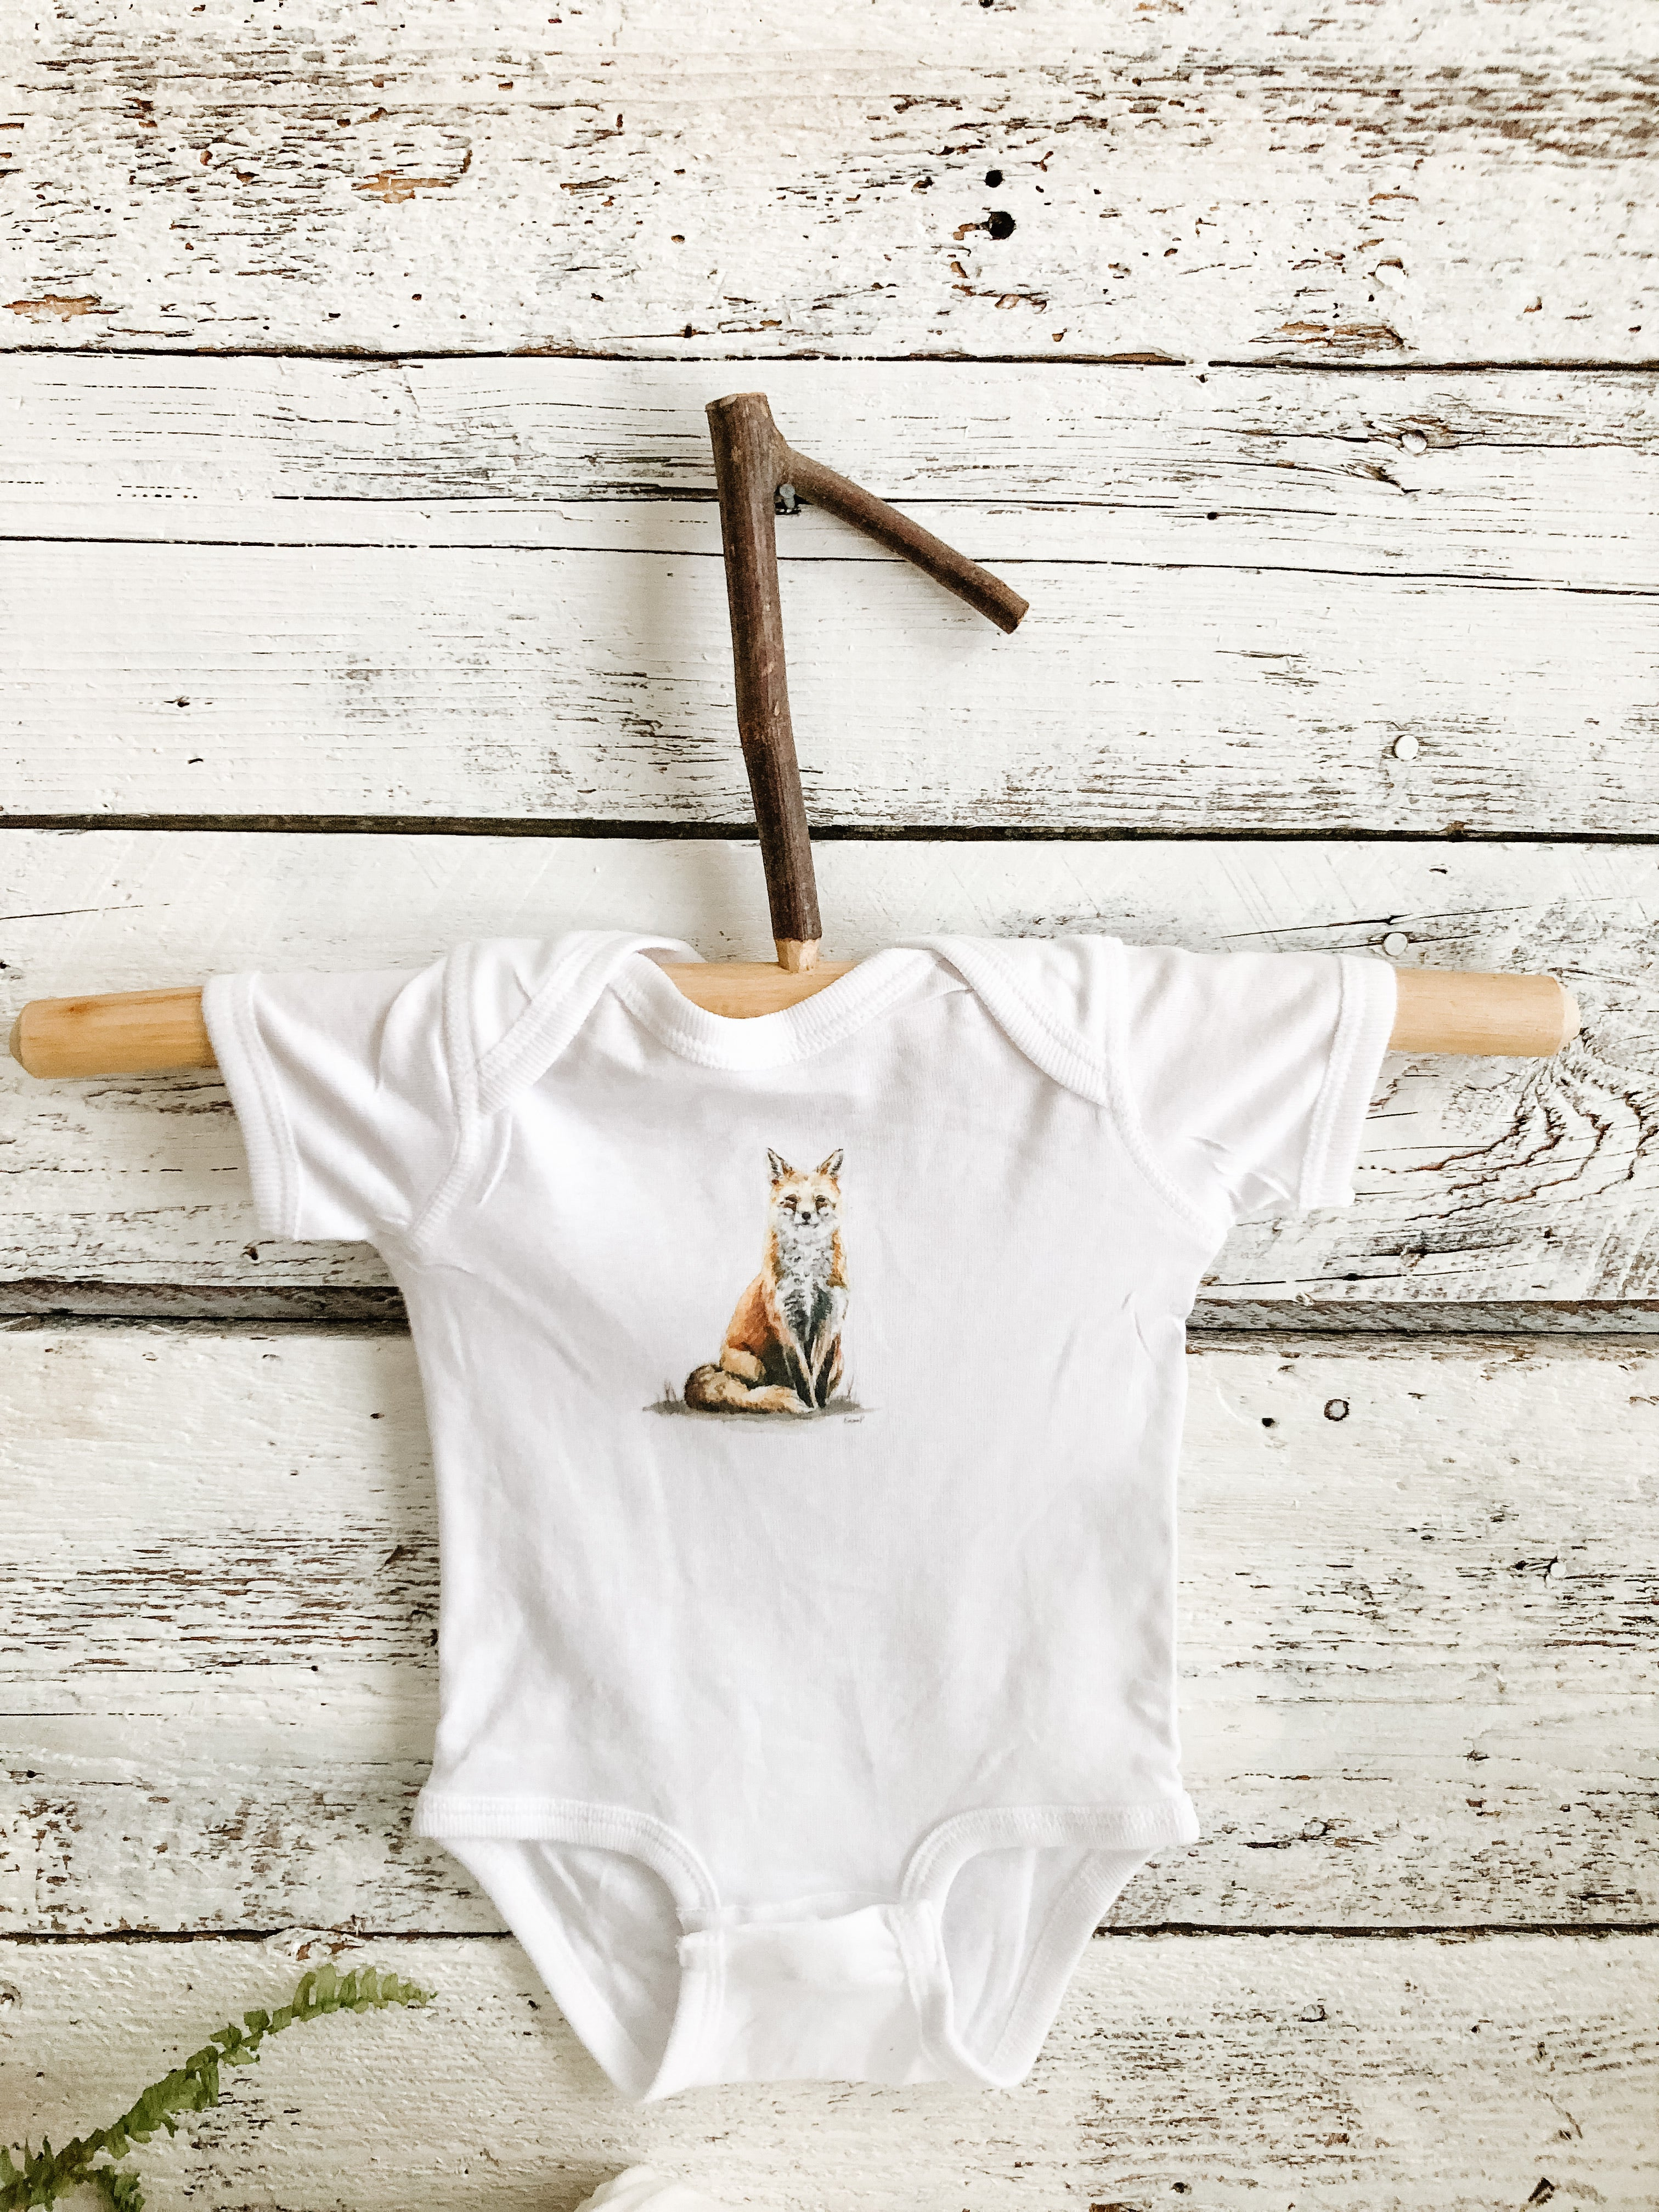 New baby gift set with fox art